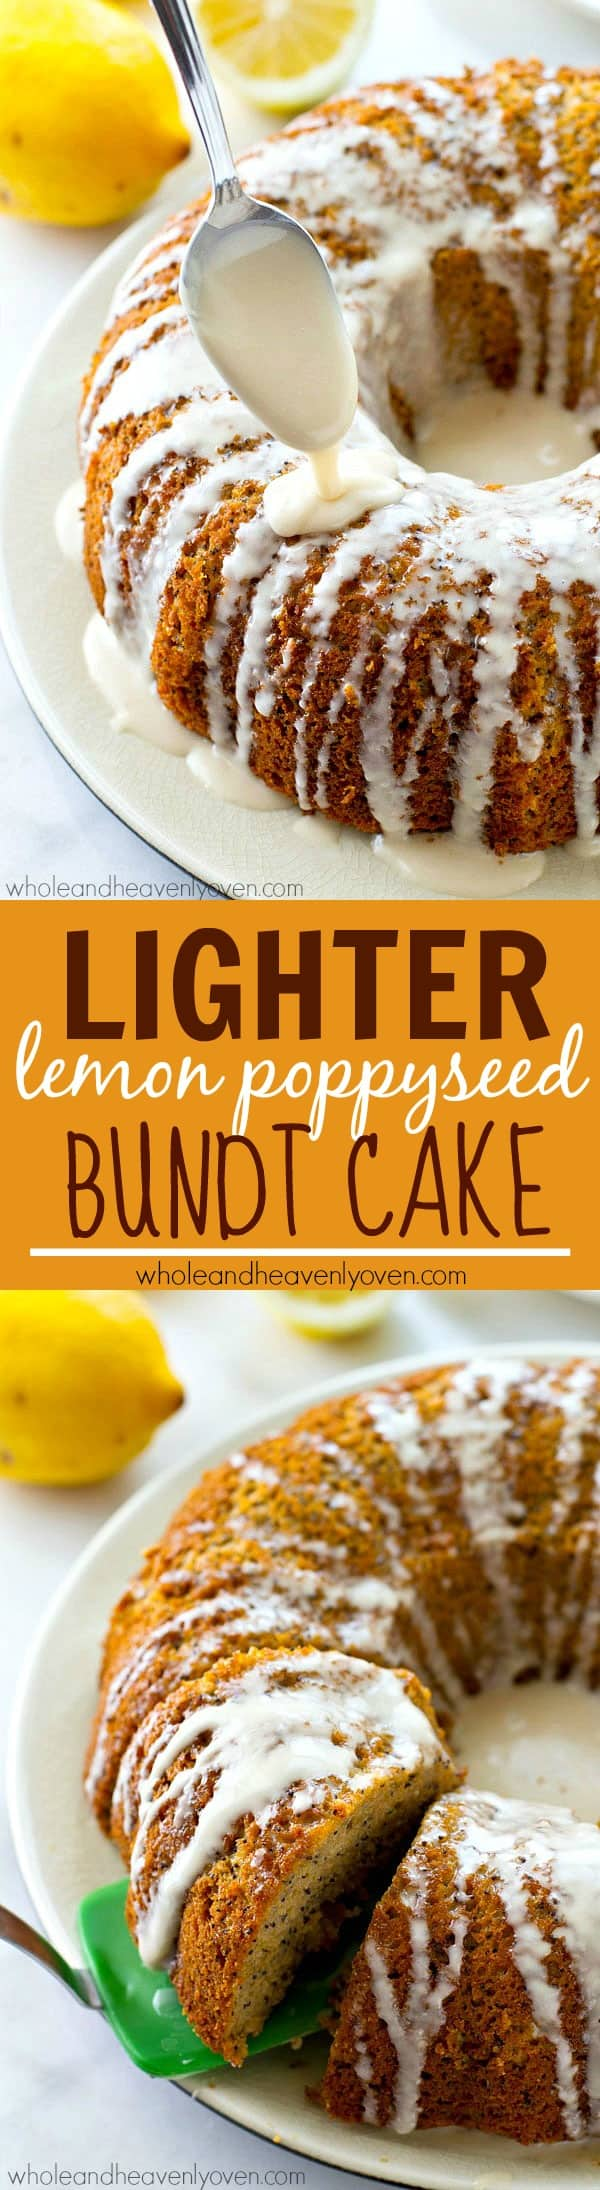 This springy lemon poppyseed bundt cake is so soft and moist inside, you'd never guess its lighter on the calories! A showstopping springtime dessert you'll make over and over again.